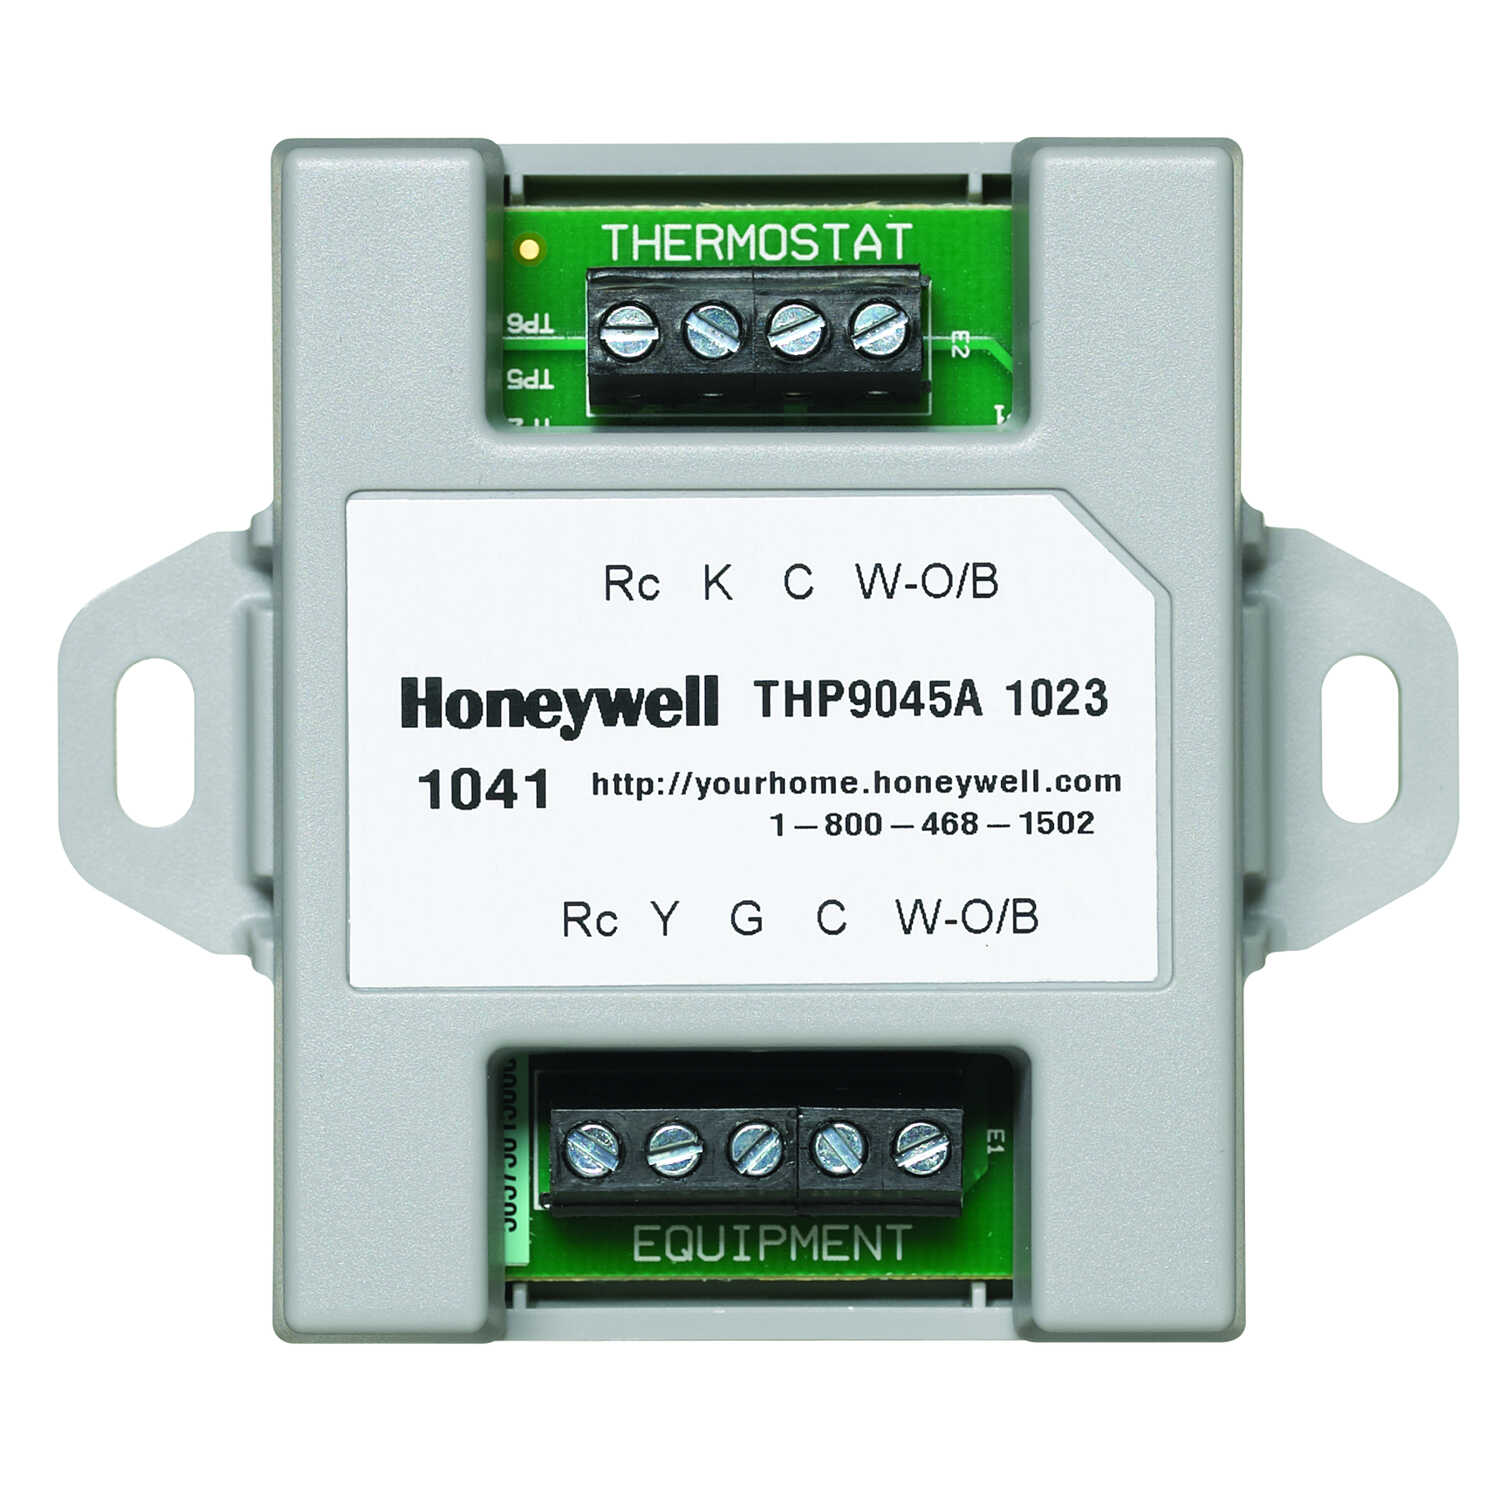 Honeywell Thermostat Wire Saver - Ace Hardware